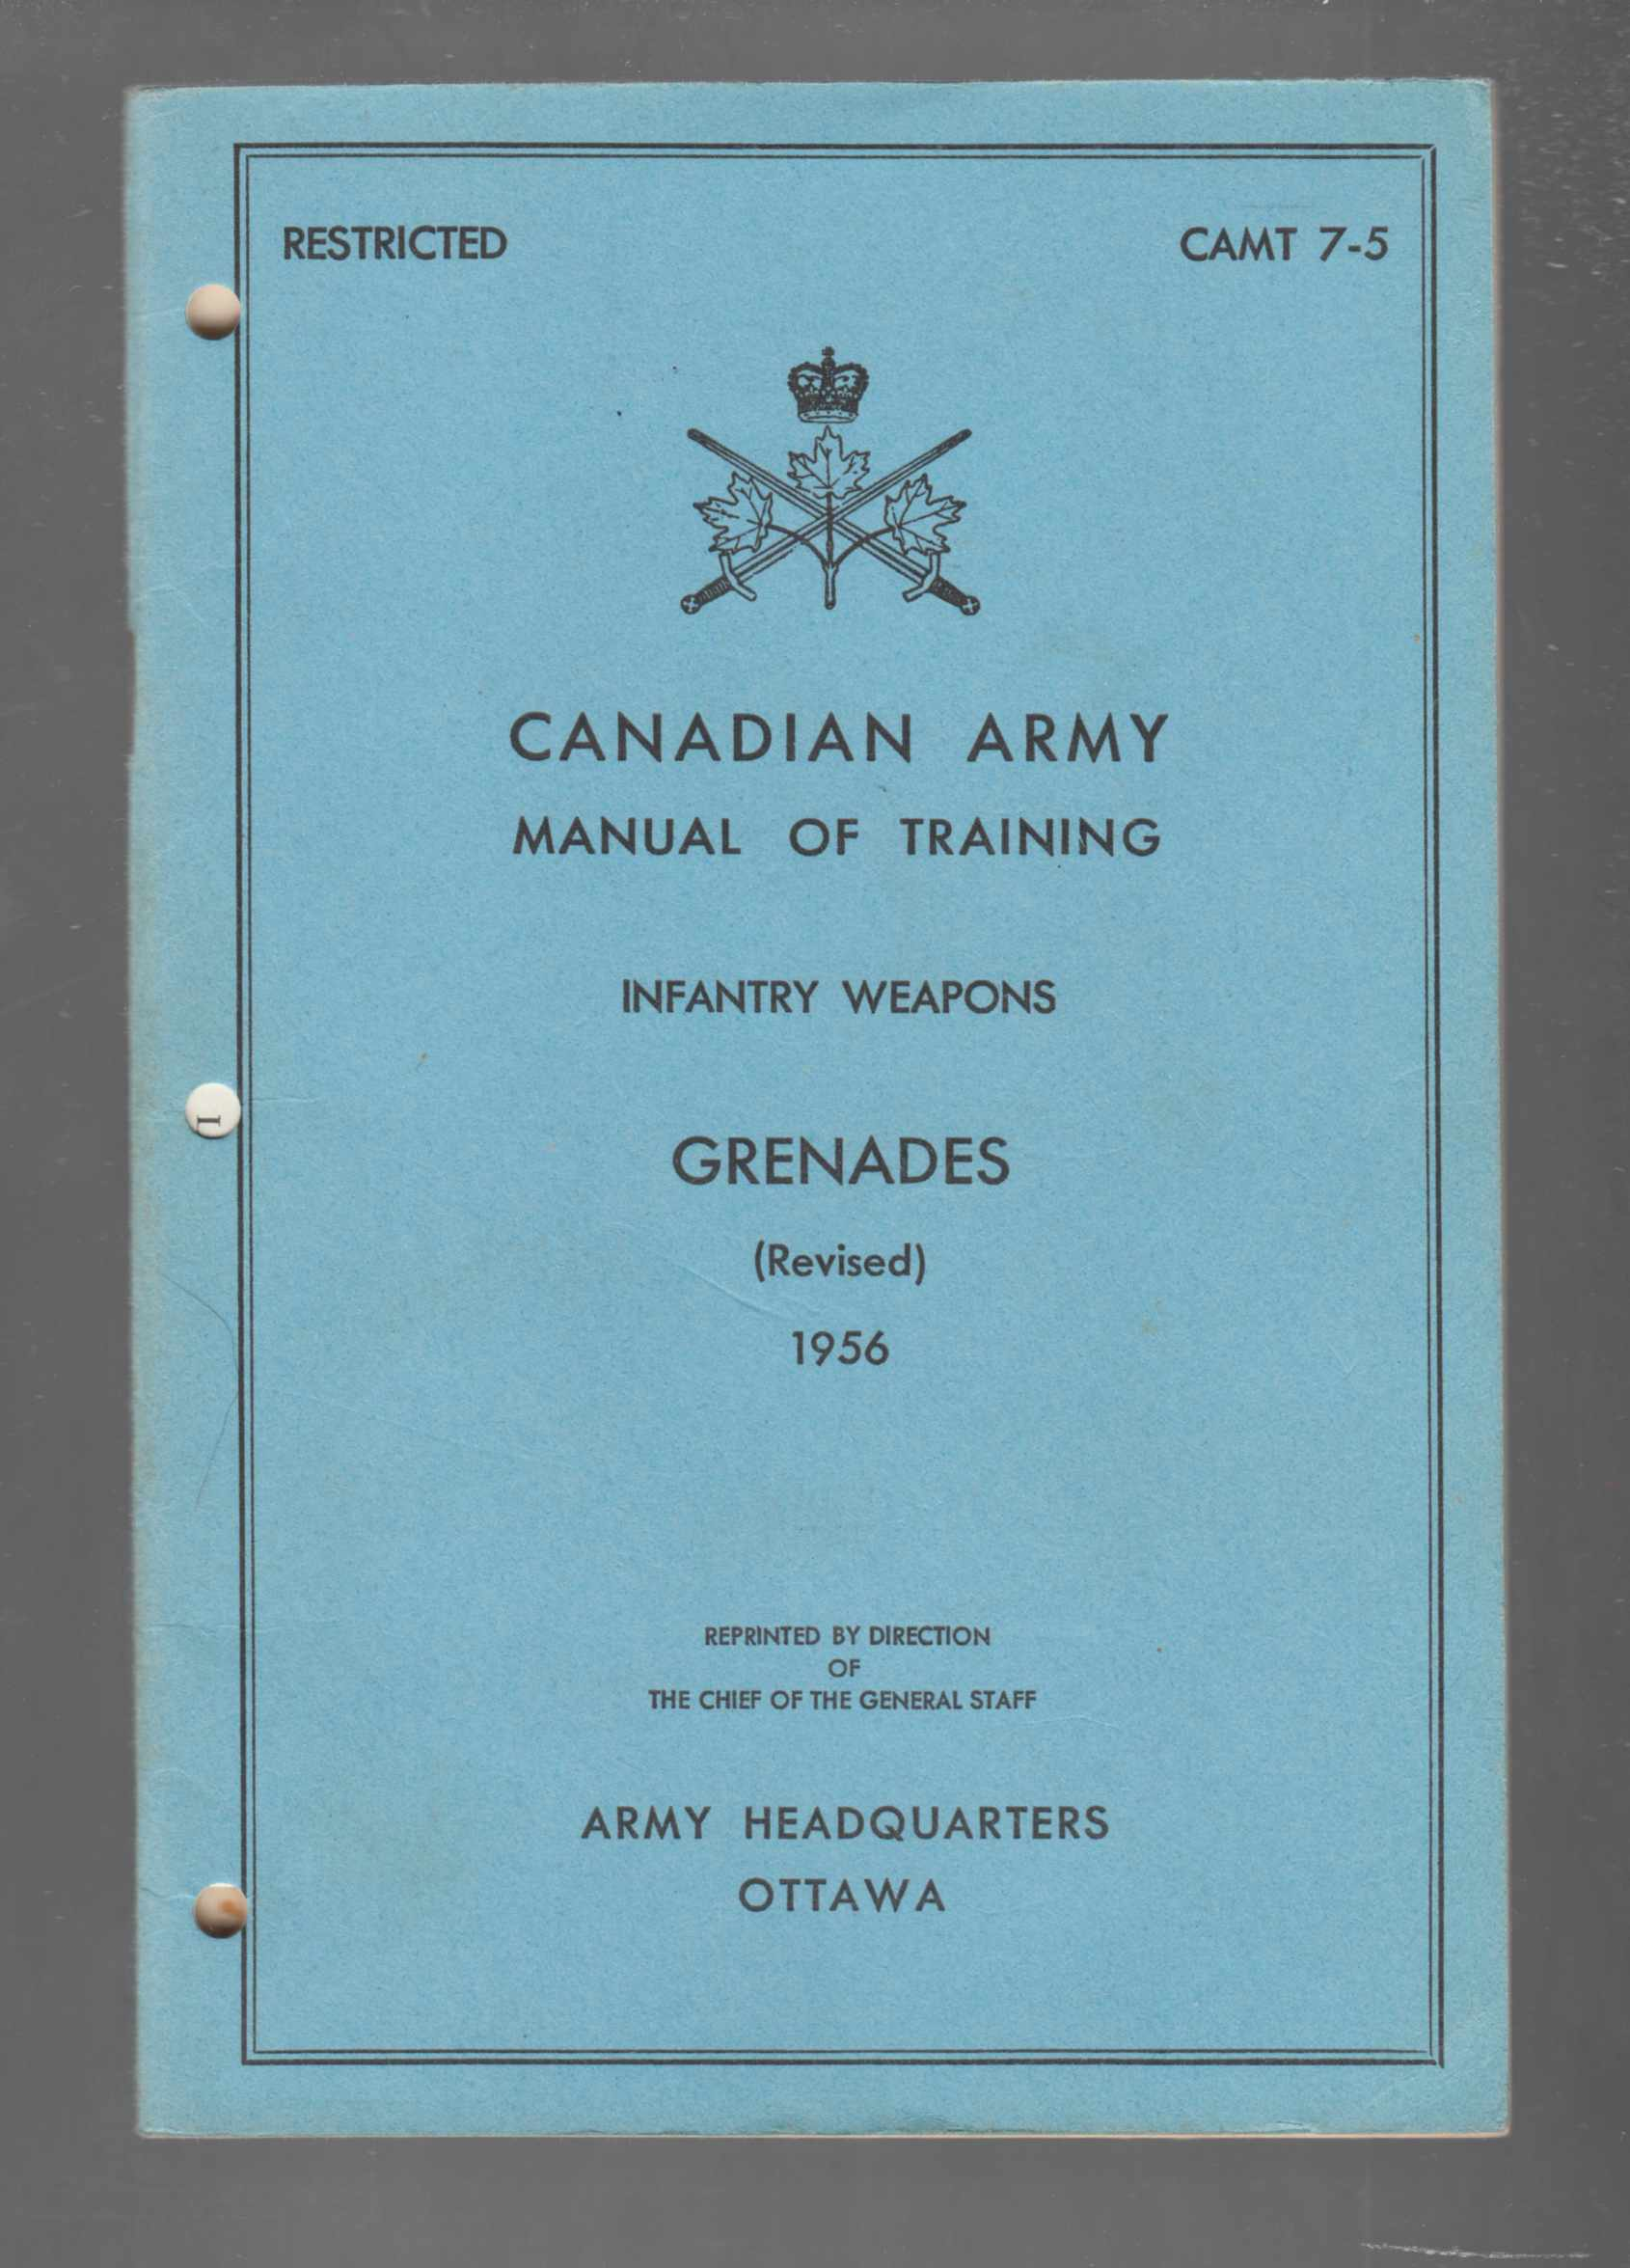 Image for Canadian Army Manual of Training Infantry Weapons Grenades (Revised) 1956 CAMT 7-5